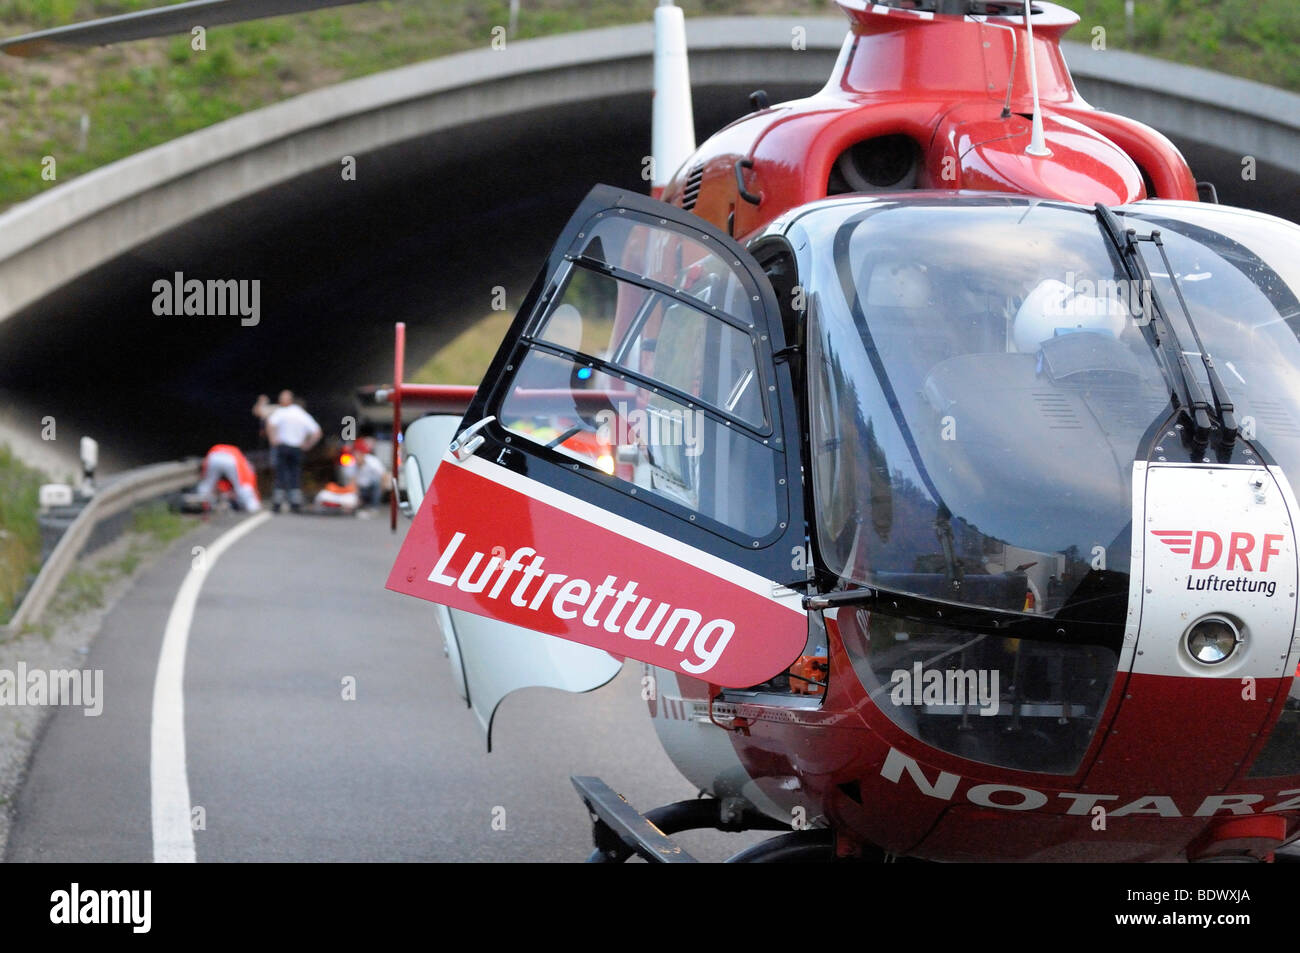 Rescue helicopter at a serious motorcycle accident on the Bundesstrasse B 295 highway between Leonberg and Renningen, - Stock Image